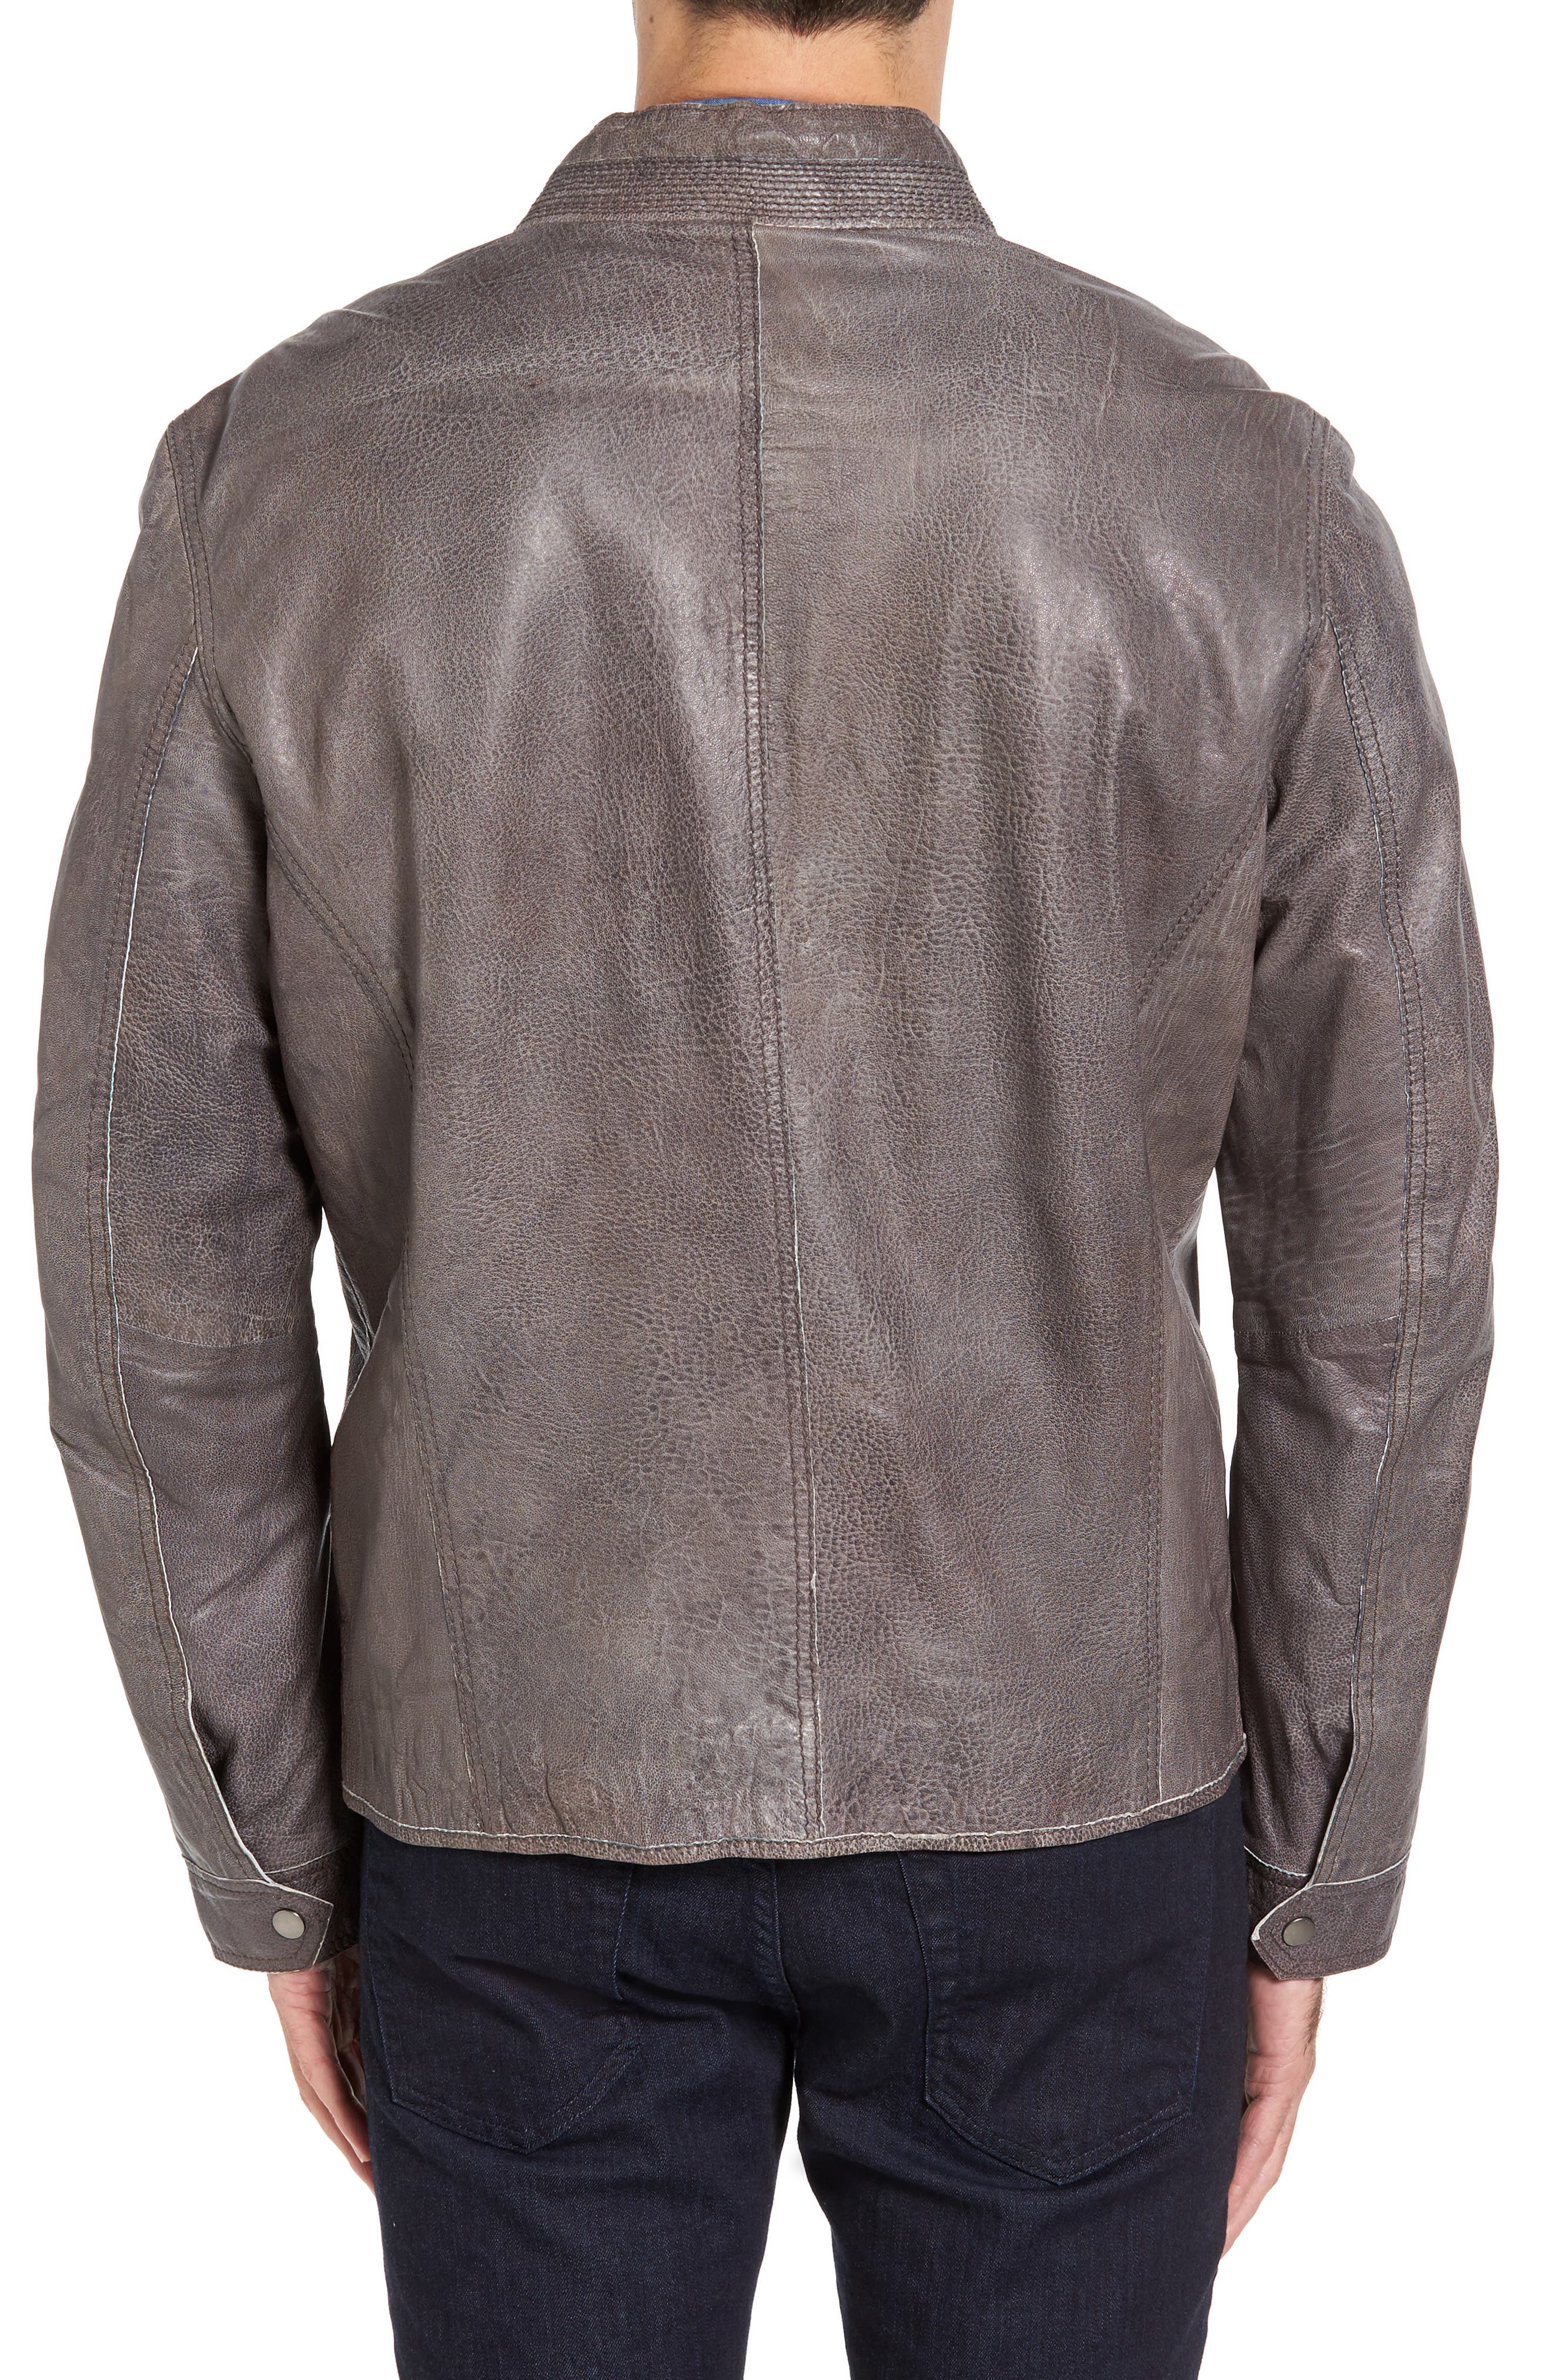 Lambskin Leather Jacket,                             Alternate thumbnail 2, color,                             Slate Grey